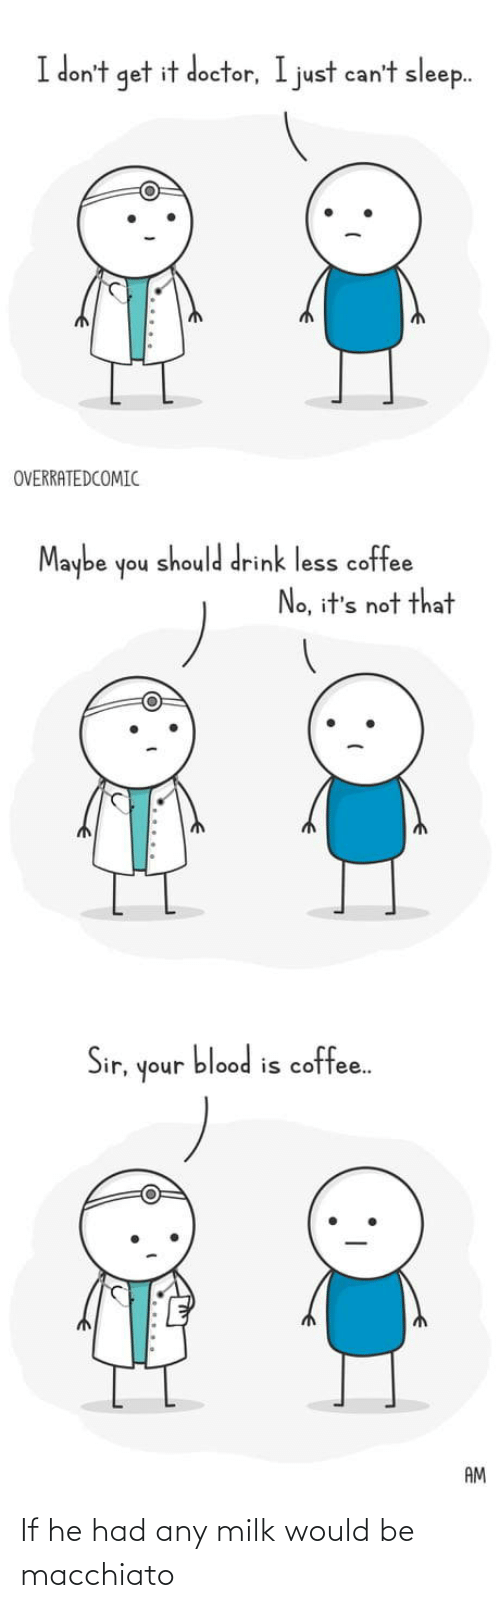 blood: I don't get it doctor, I just can't sleep.  OVERRATEDCOMIC  Maybe  should drink less coffee  noh  No, it's not that  blood is coffee.  Sir,  unoh  AM If he had any milk would be macchiato